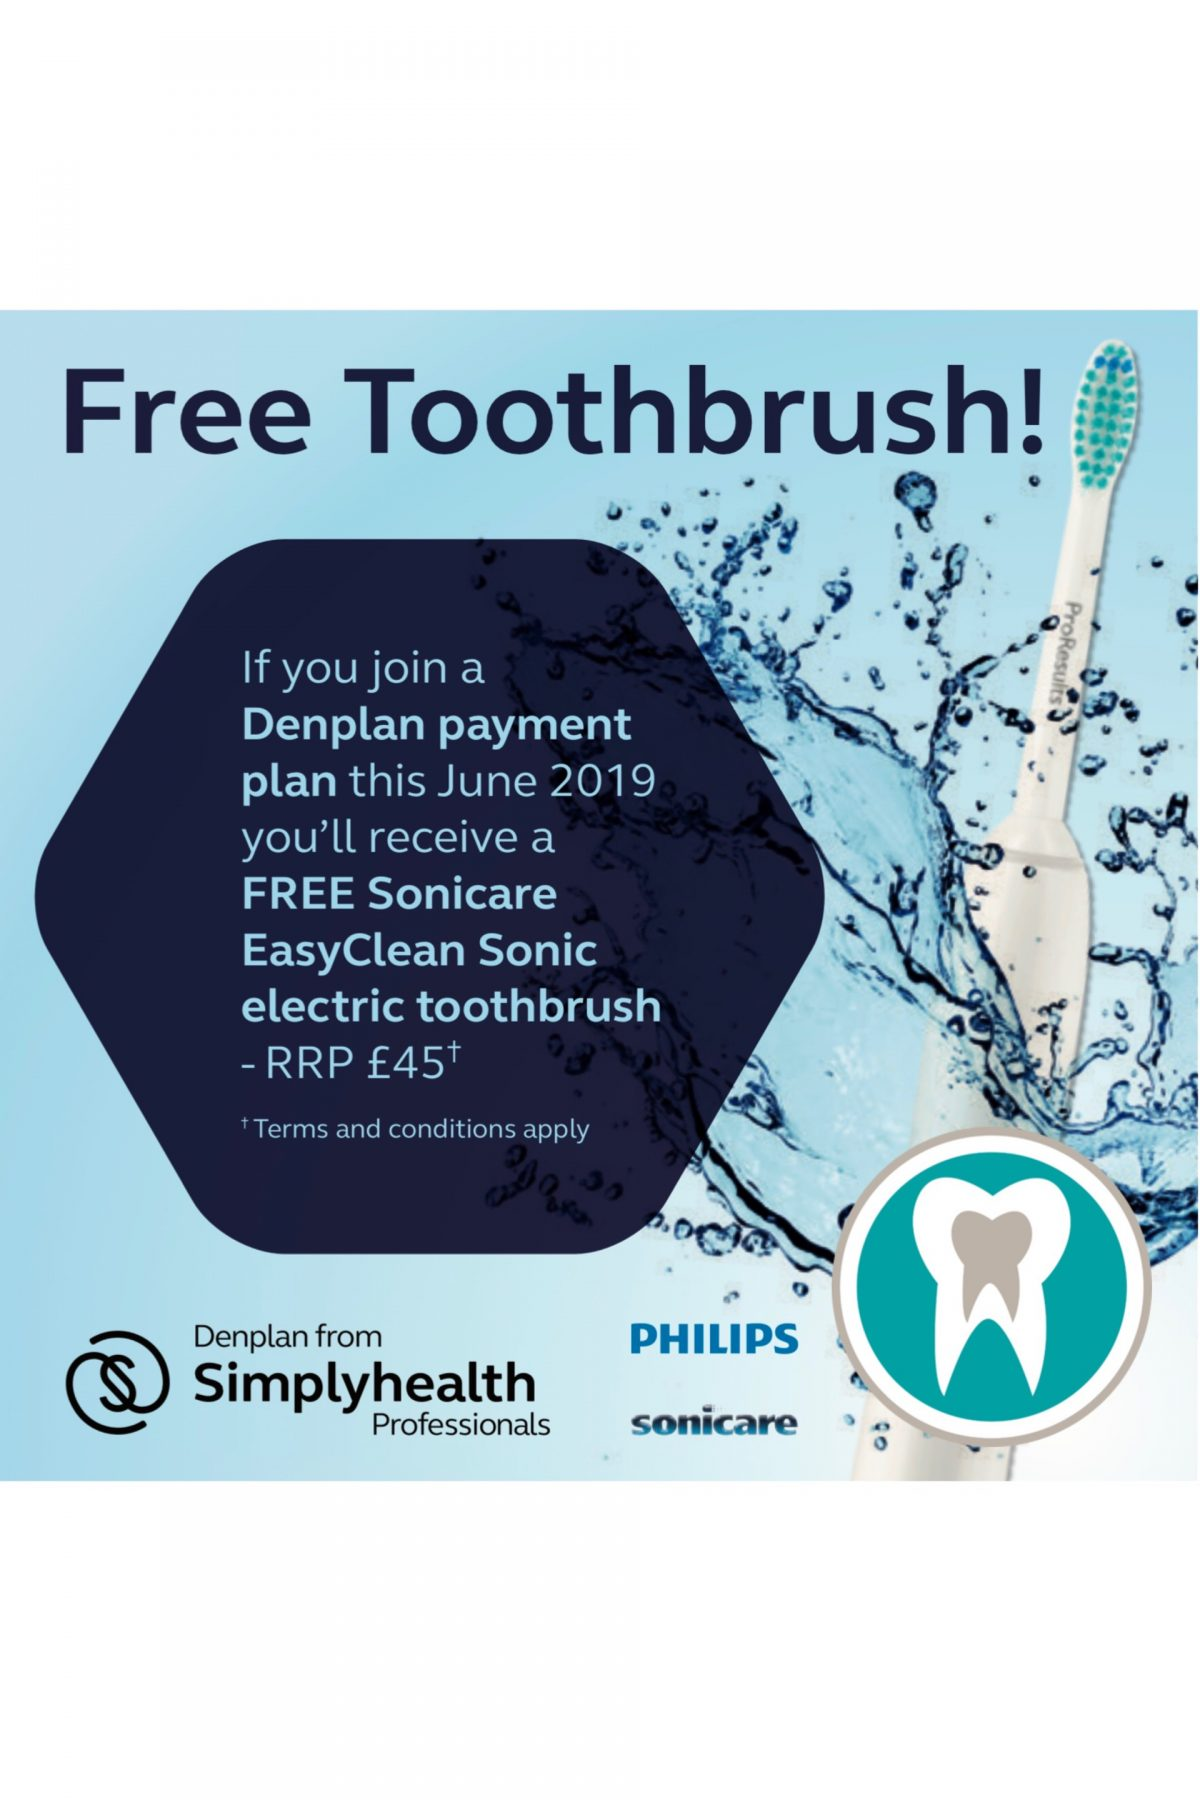 Free Electric Toothbrush Promotion!